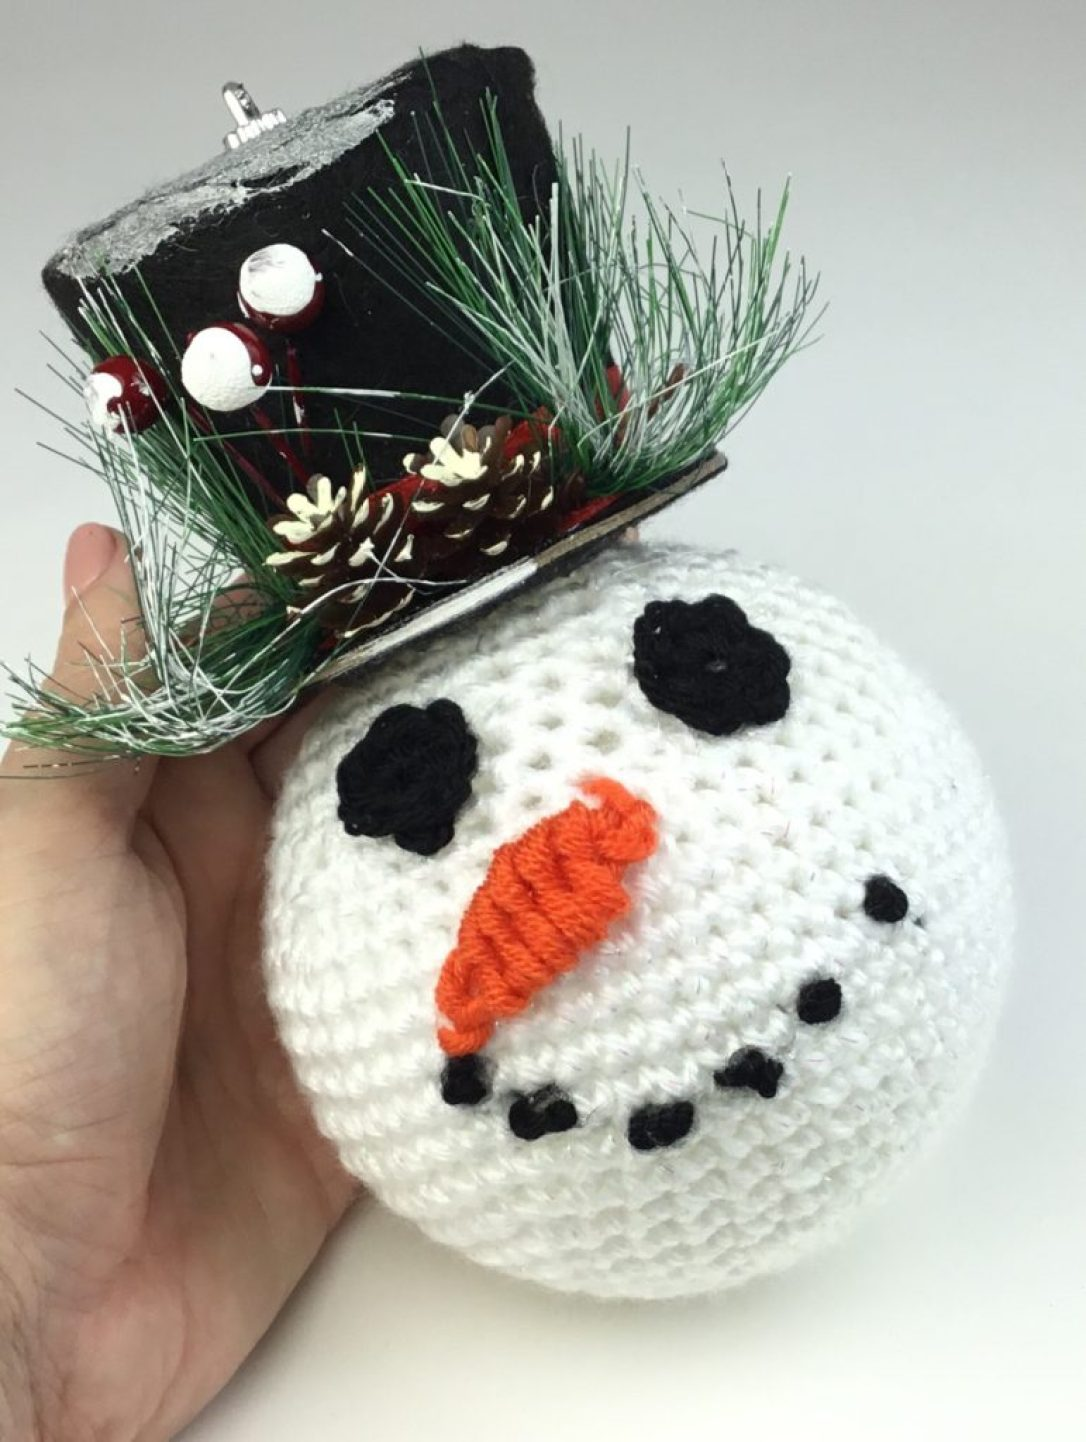 Free crochet pattern for Snowman Ornament with top hat from Dollar Tree #freecrochetpattern #Christmasornament #inexpensivecraft #diy #Christmas